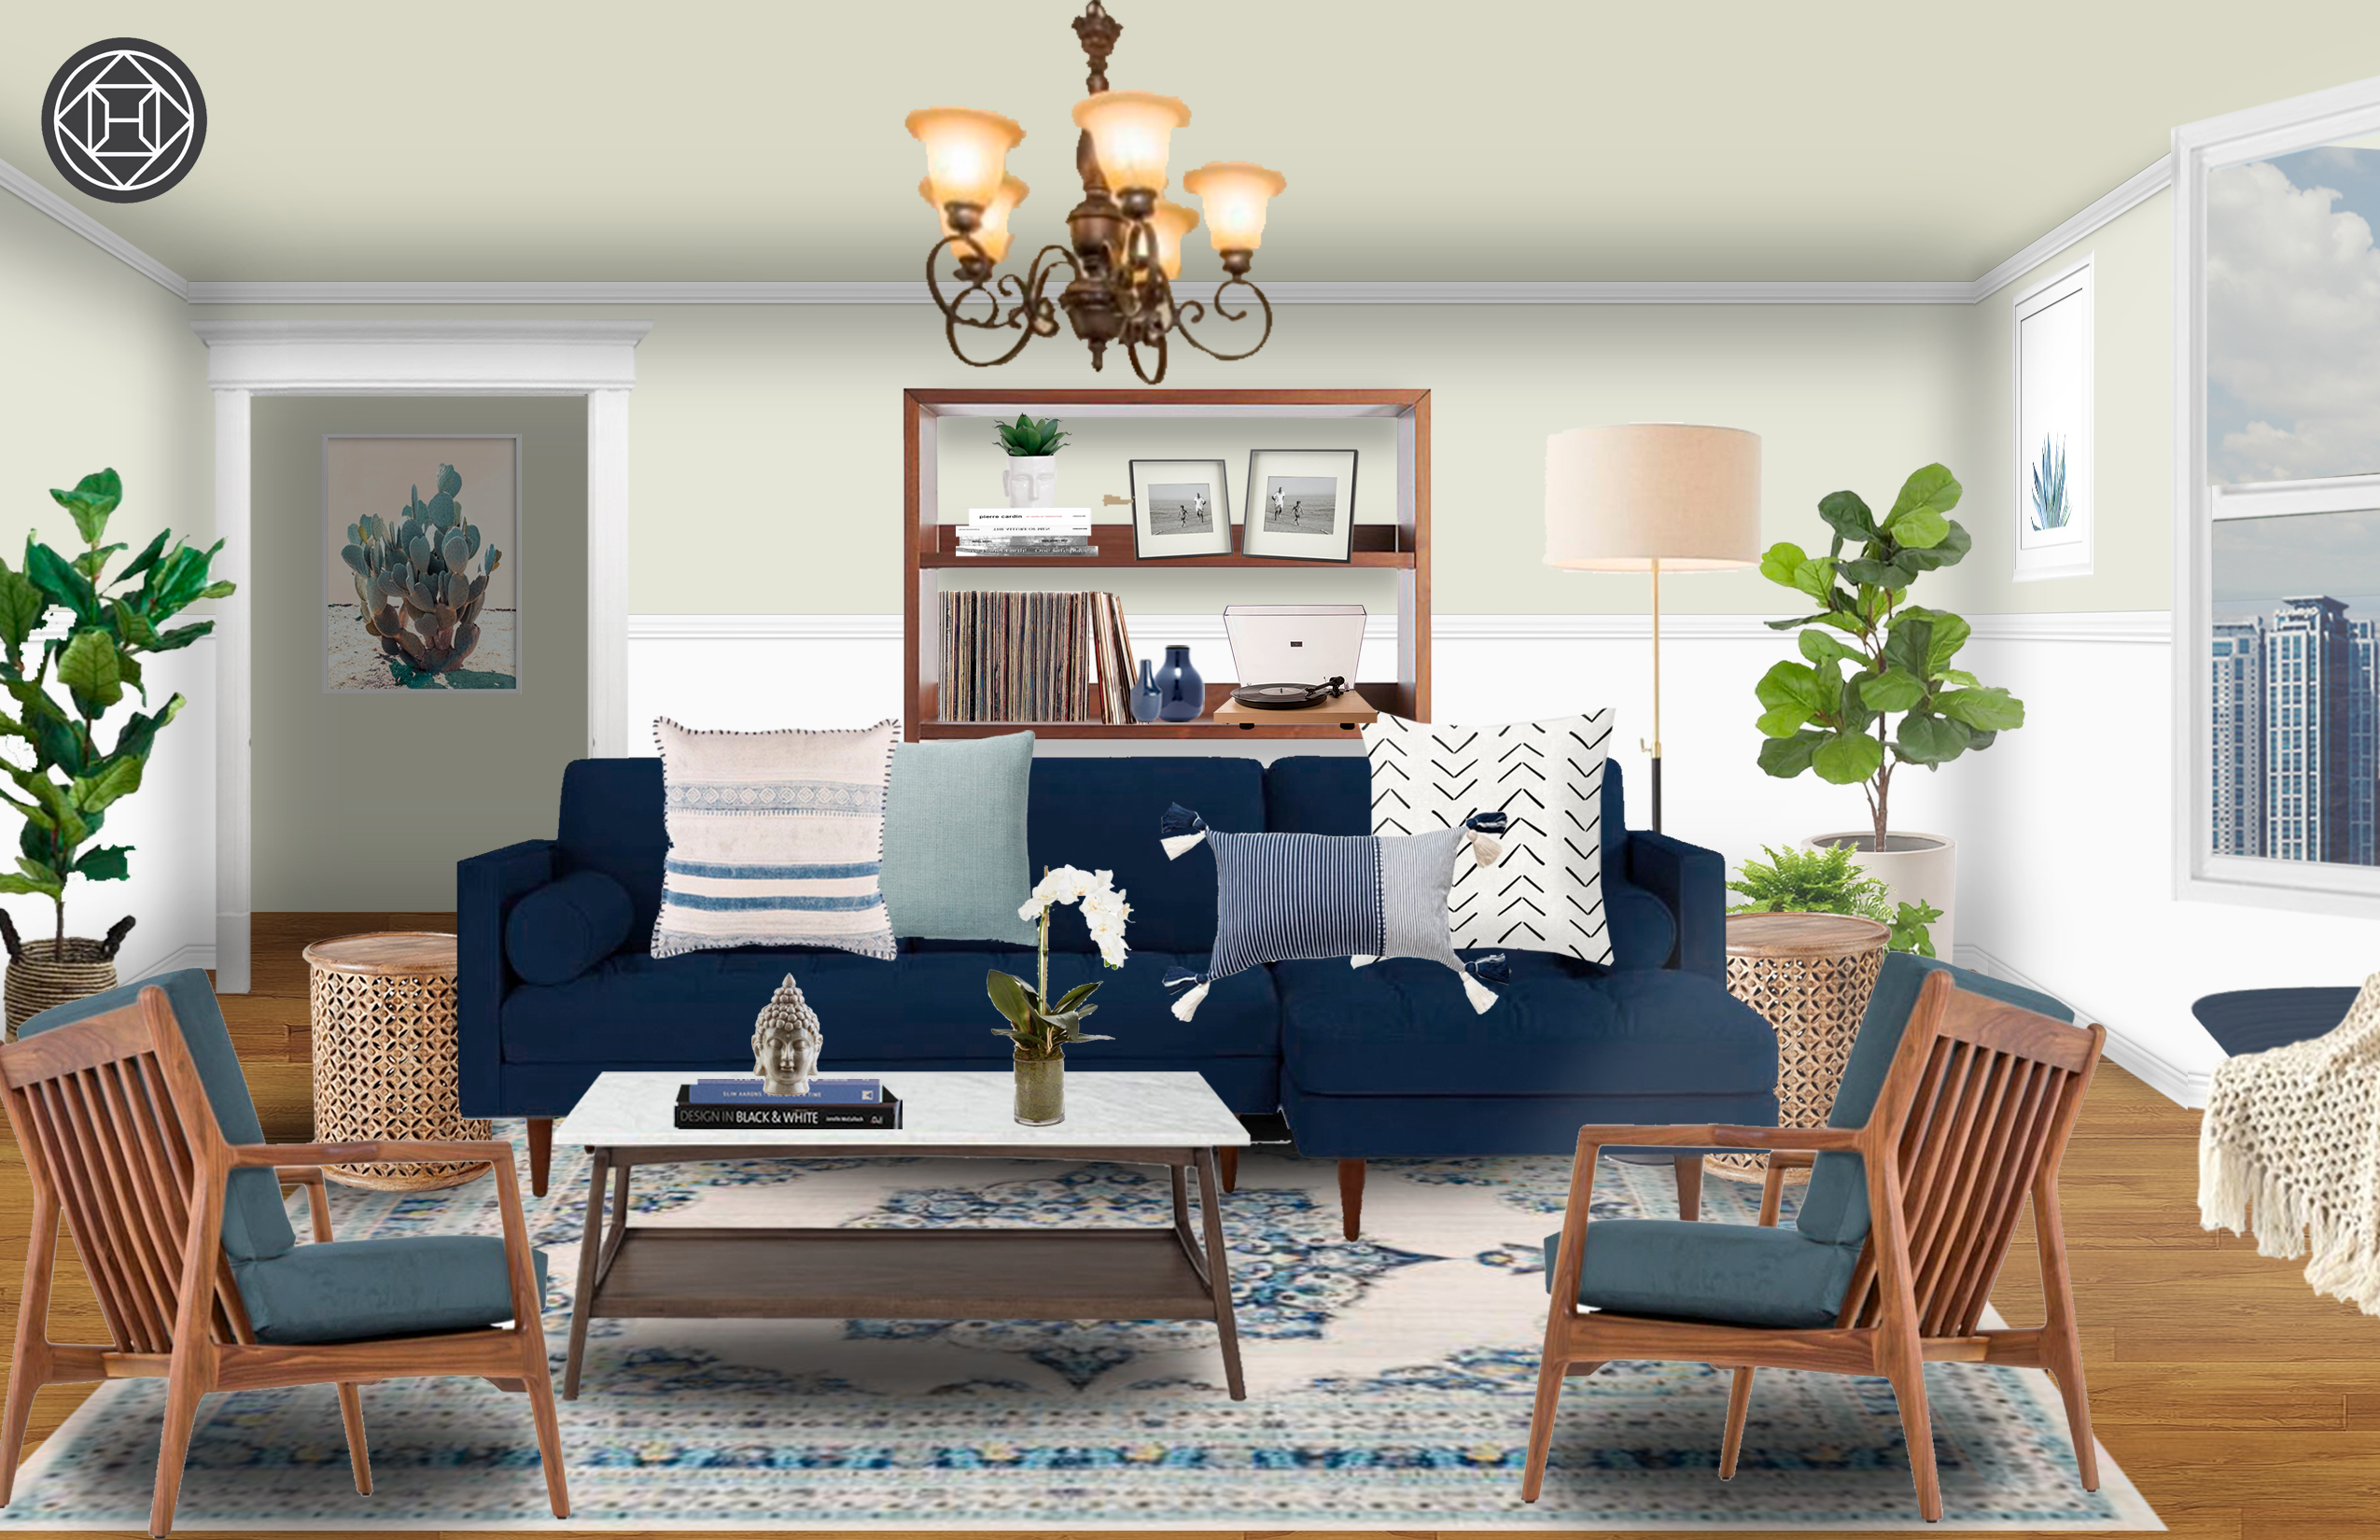 Bohemian, Midcentury Modern Living Room Design by Havenly ...